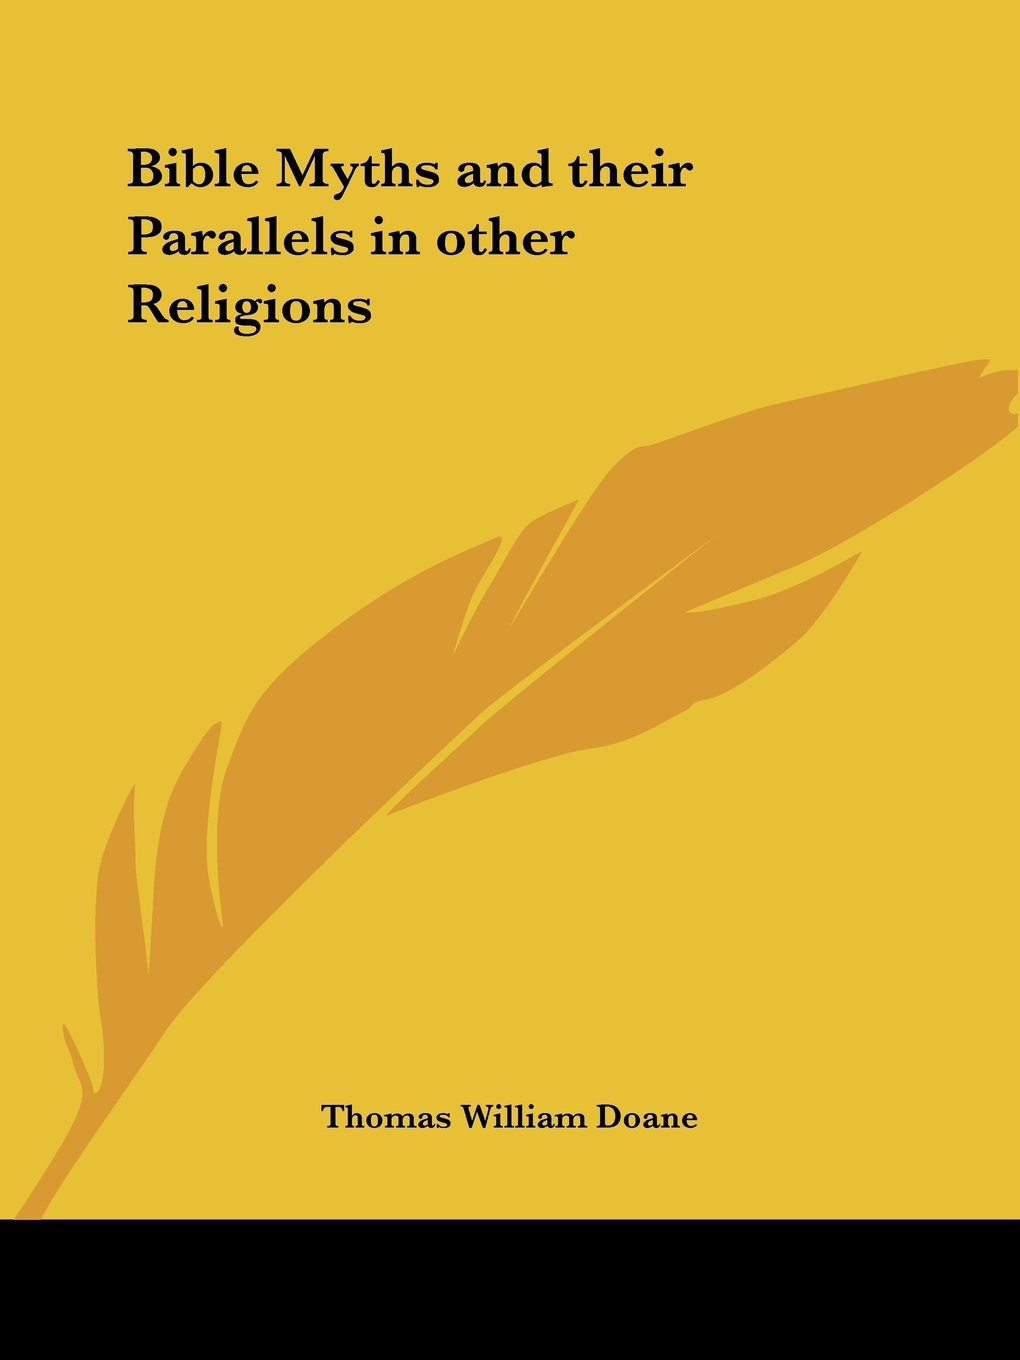 Bible Myths and their Parallels in other Religions: Thomas William Doane:  9781564599223: Amazon.com: Books